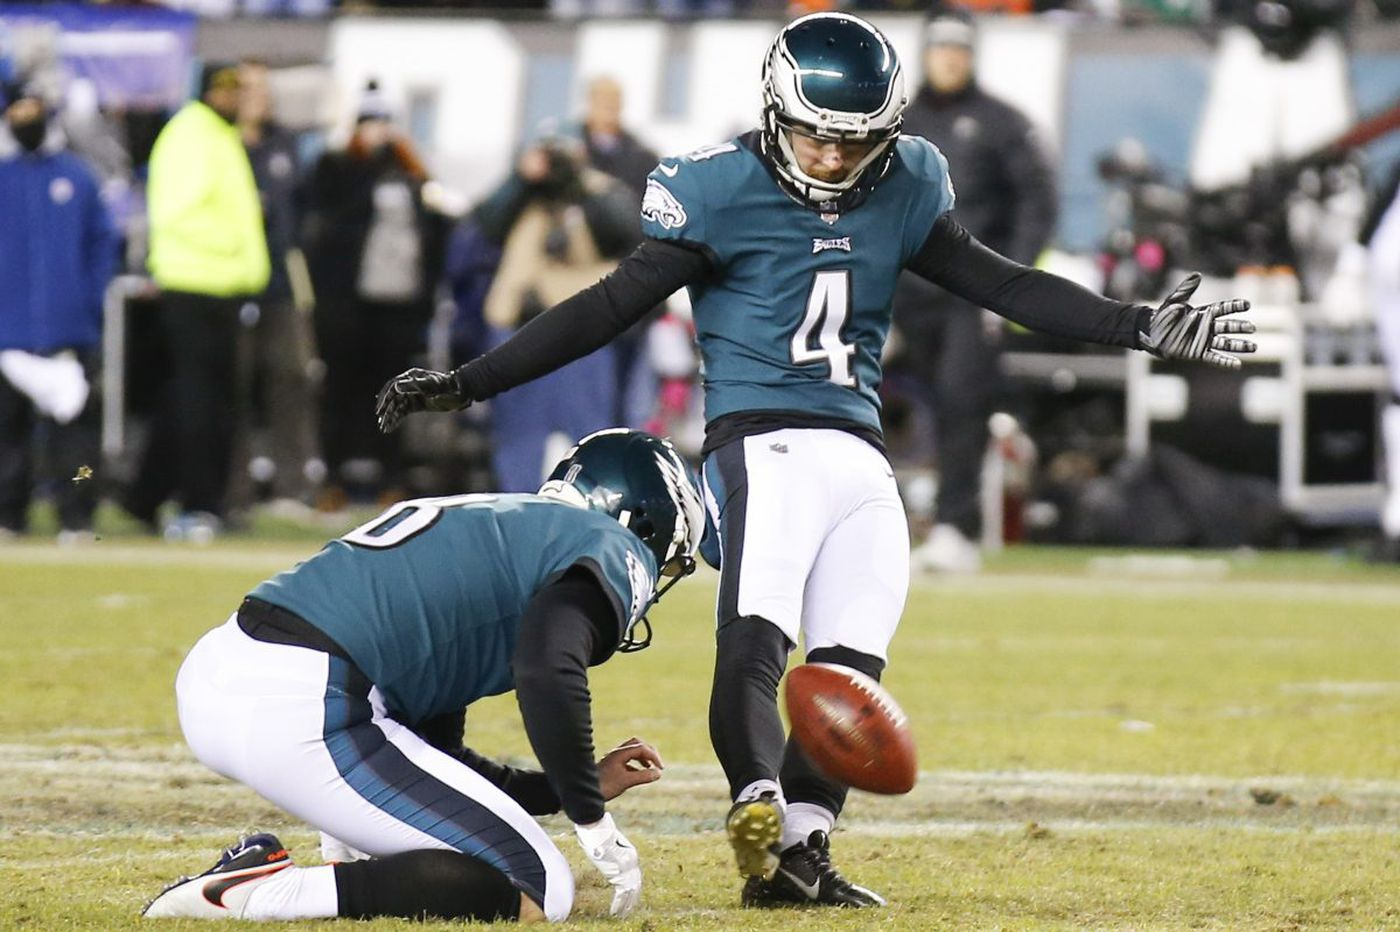 Eagles 15, Falcons 10 - as it happened